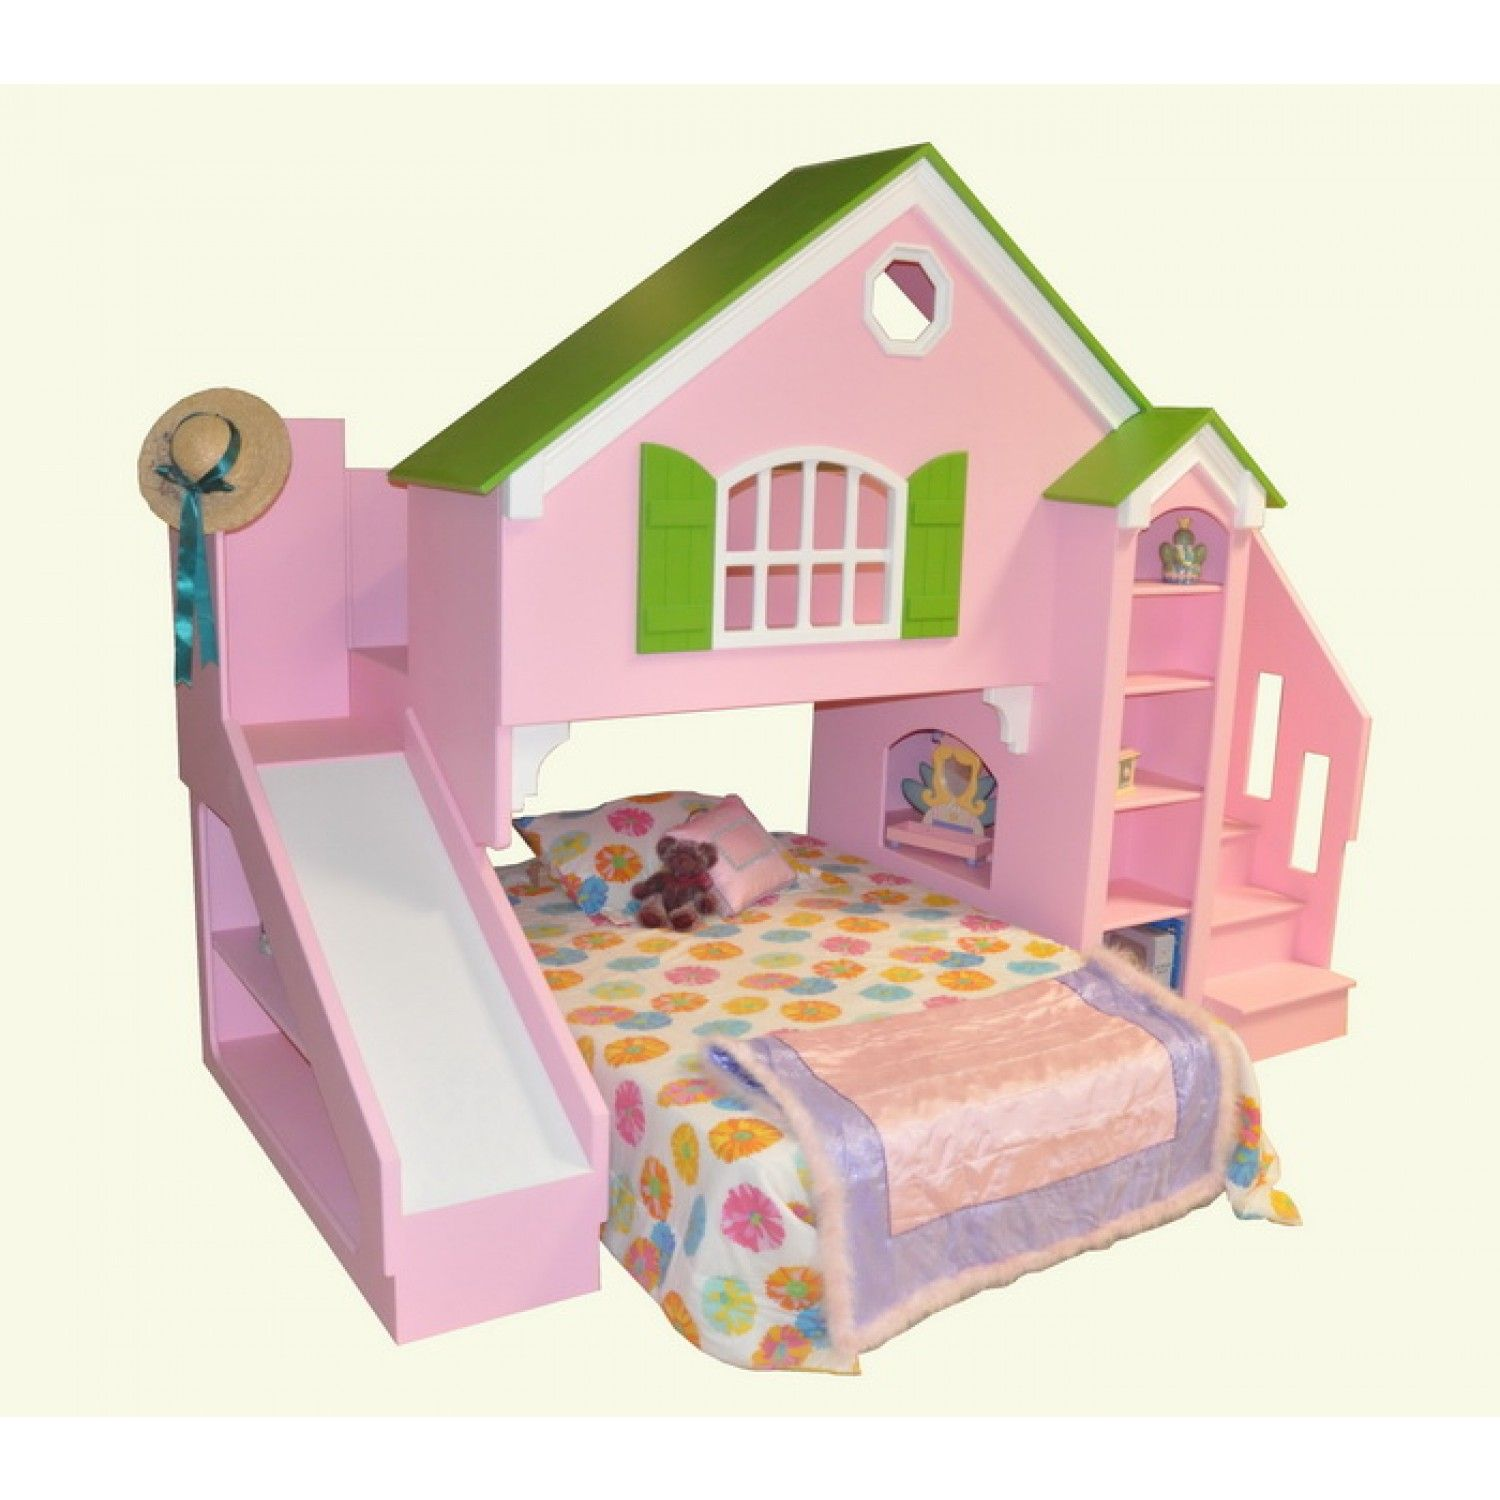 Dollhouse Loft Bed Themed Beds By Dolls For Kids Pinterest